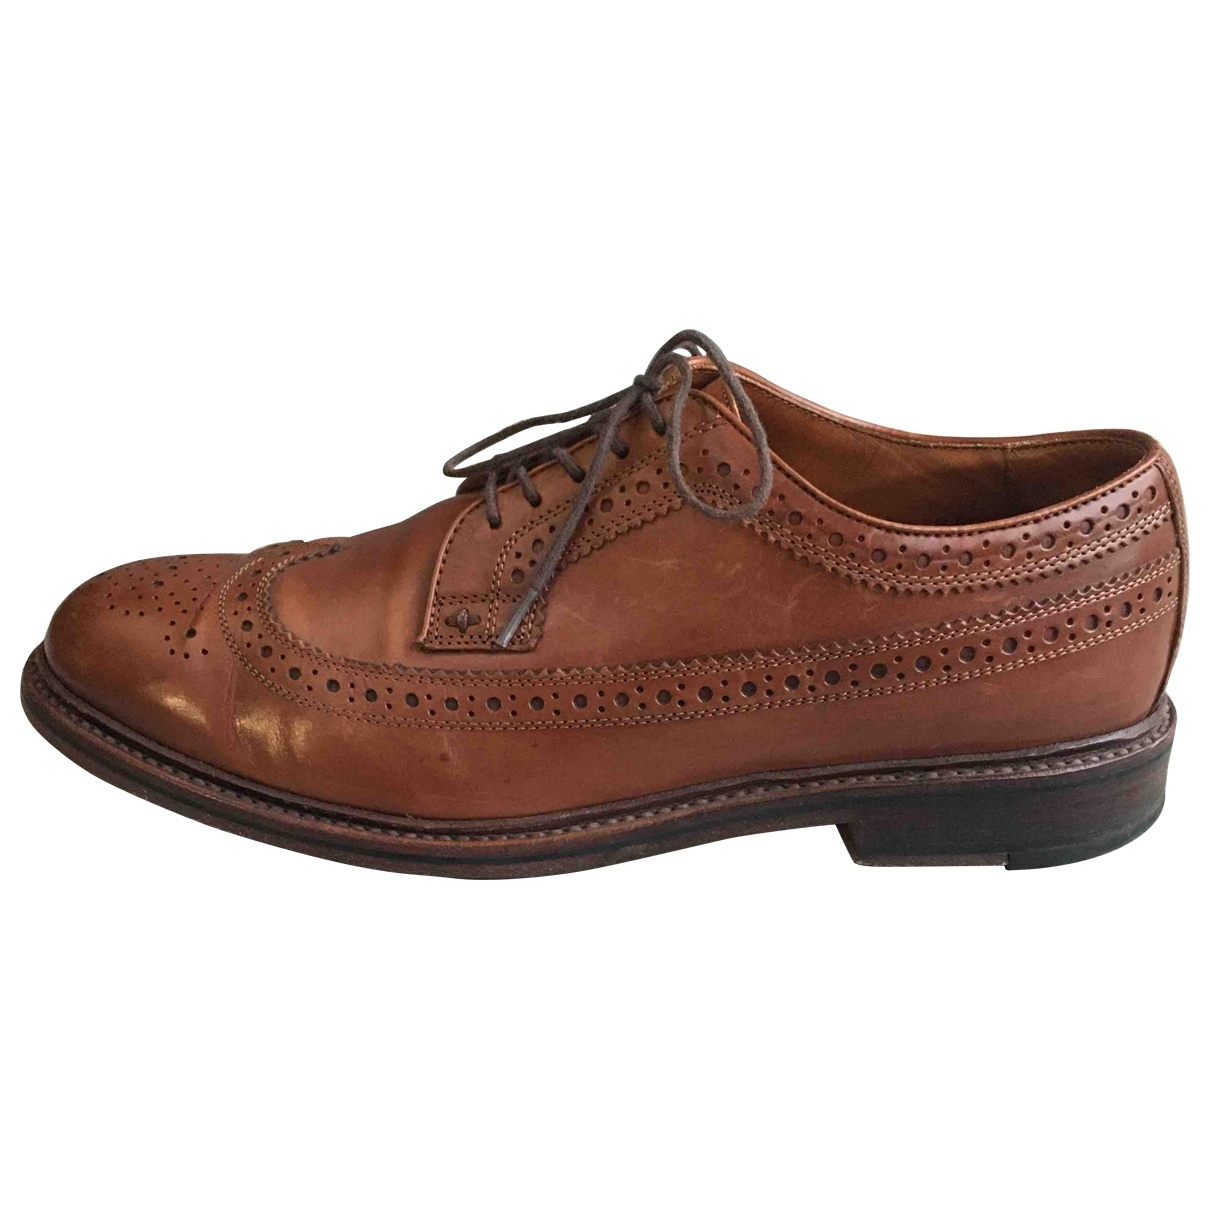 J.crew \N Leather Lace ups for Men 8.5 UK